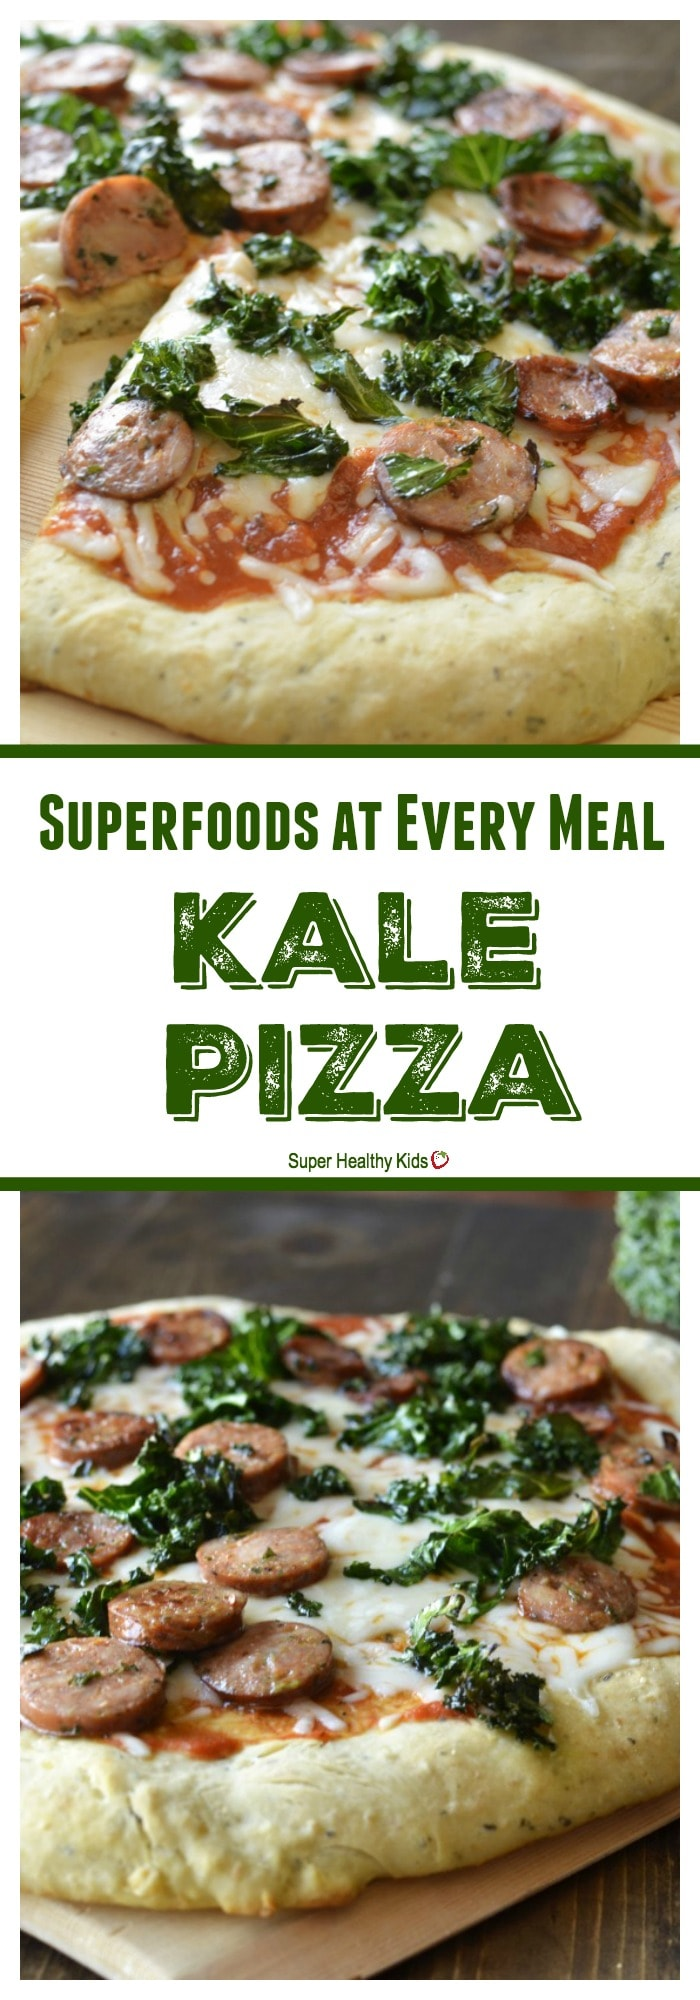 FOOD - Superfoods at Every Meal: Kale Pizza. This kale pizza includes chickpeas in the crust. So delicious and good for you! http://www.superhealthykids.com/superfoods-at-every-meal-kale-pizza/